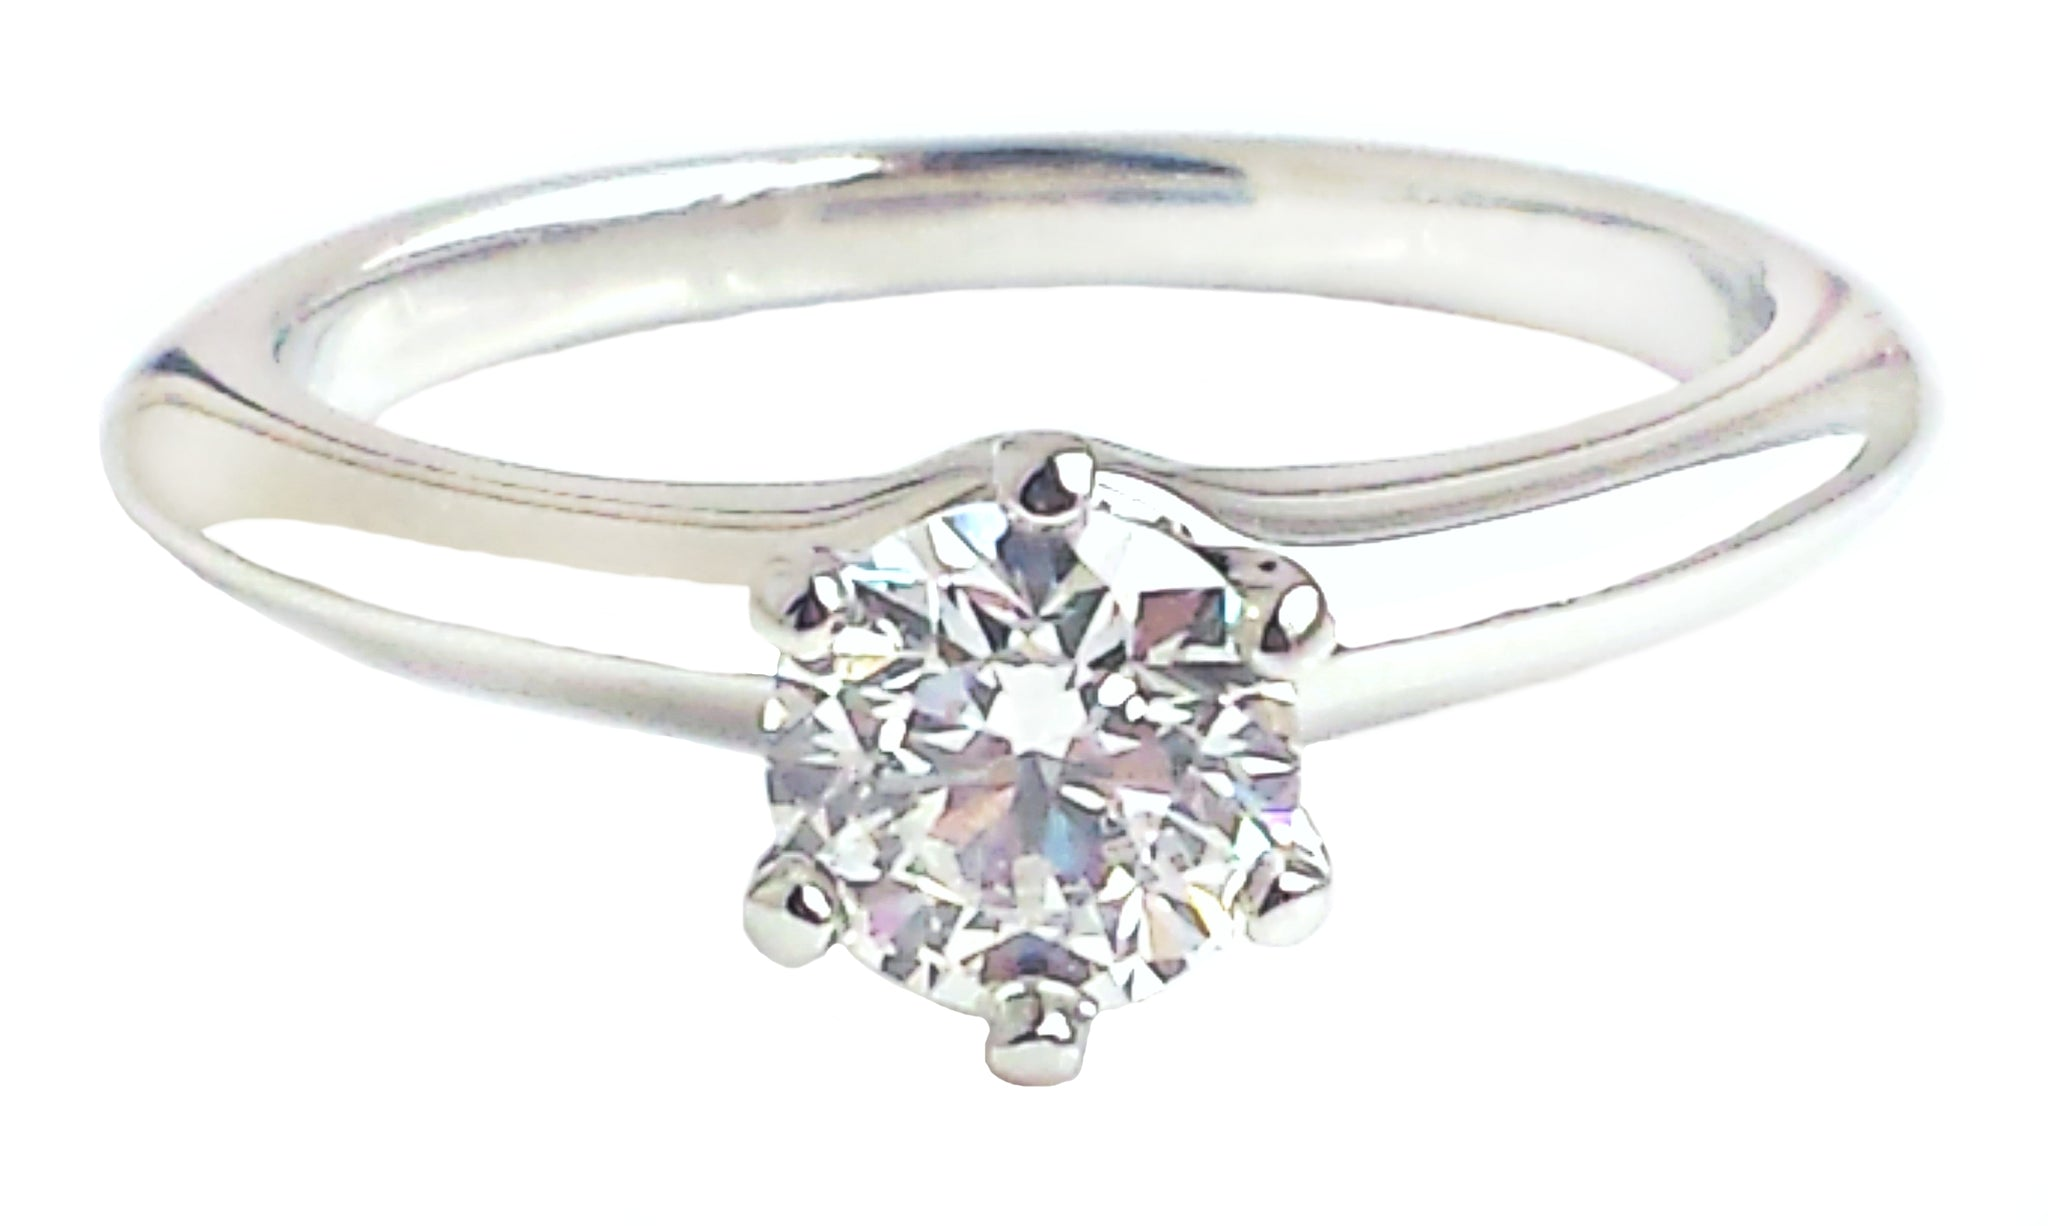 Tiffany & Co. 0.62ct I/VS1 Triple-X Round Brilliant Cut Diamond Engagement Ring